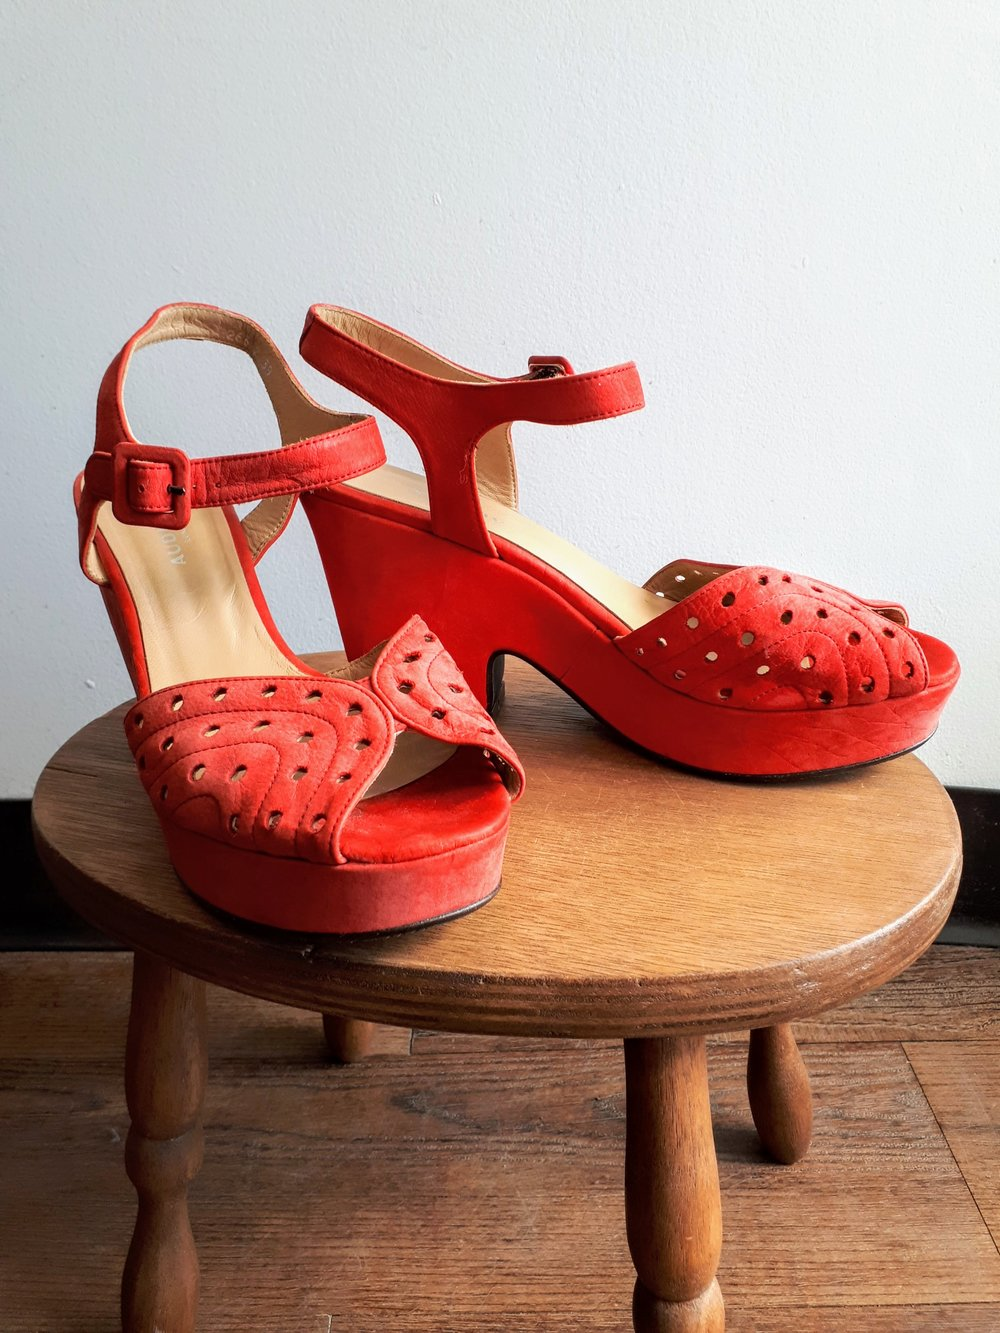 Audley shoes; S 8.5, $62